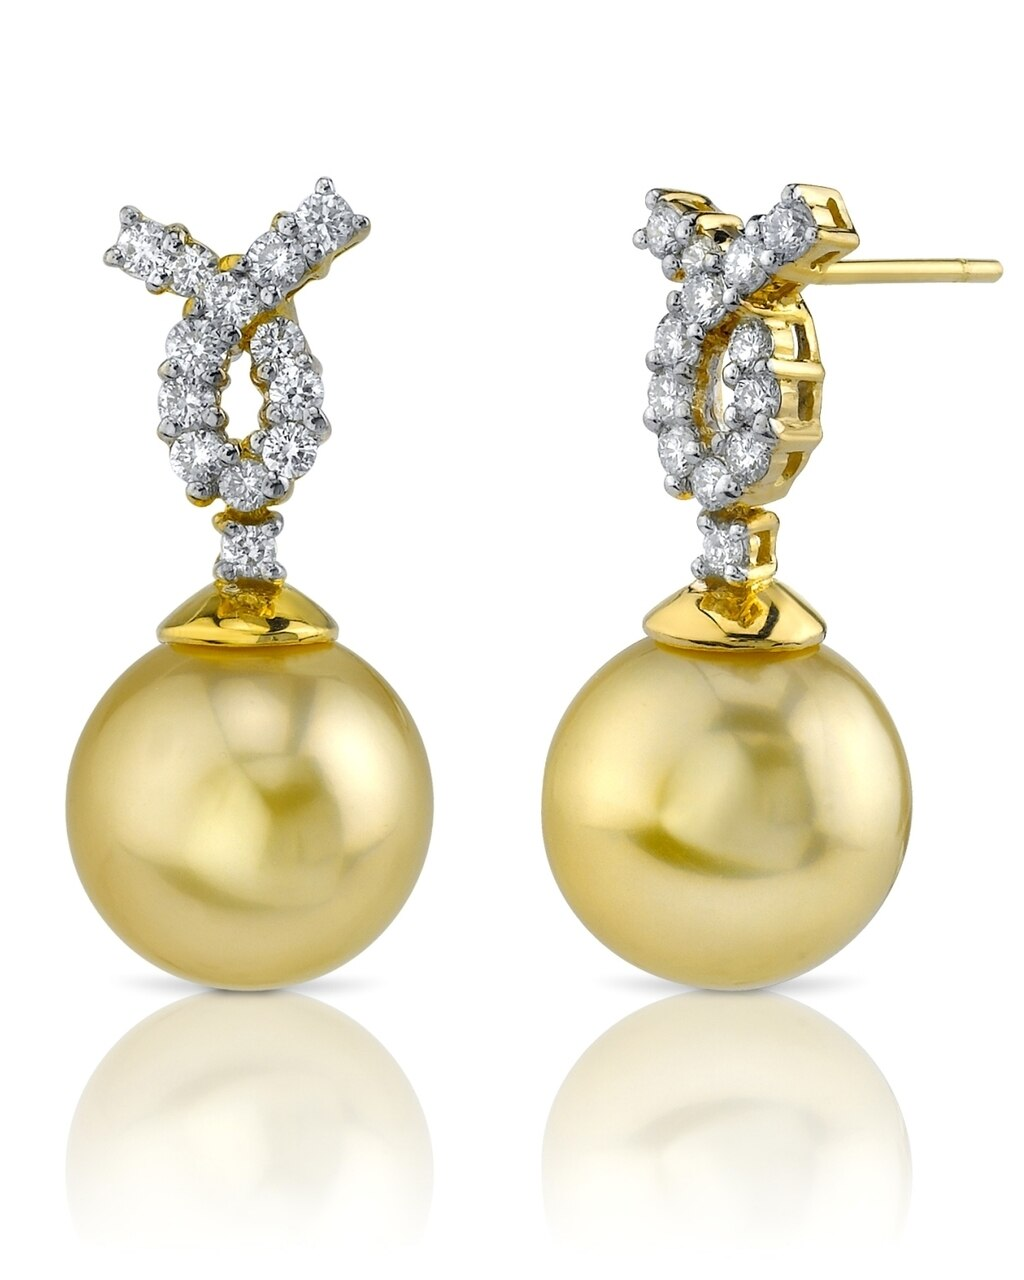 Exquisite earrings feature two 11.0-12.0mm  Gold South Sea pearls, selected for their luminous luster